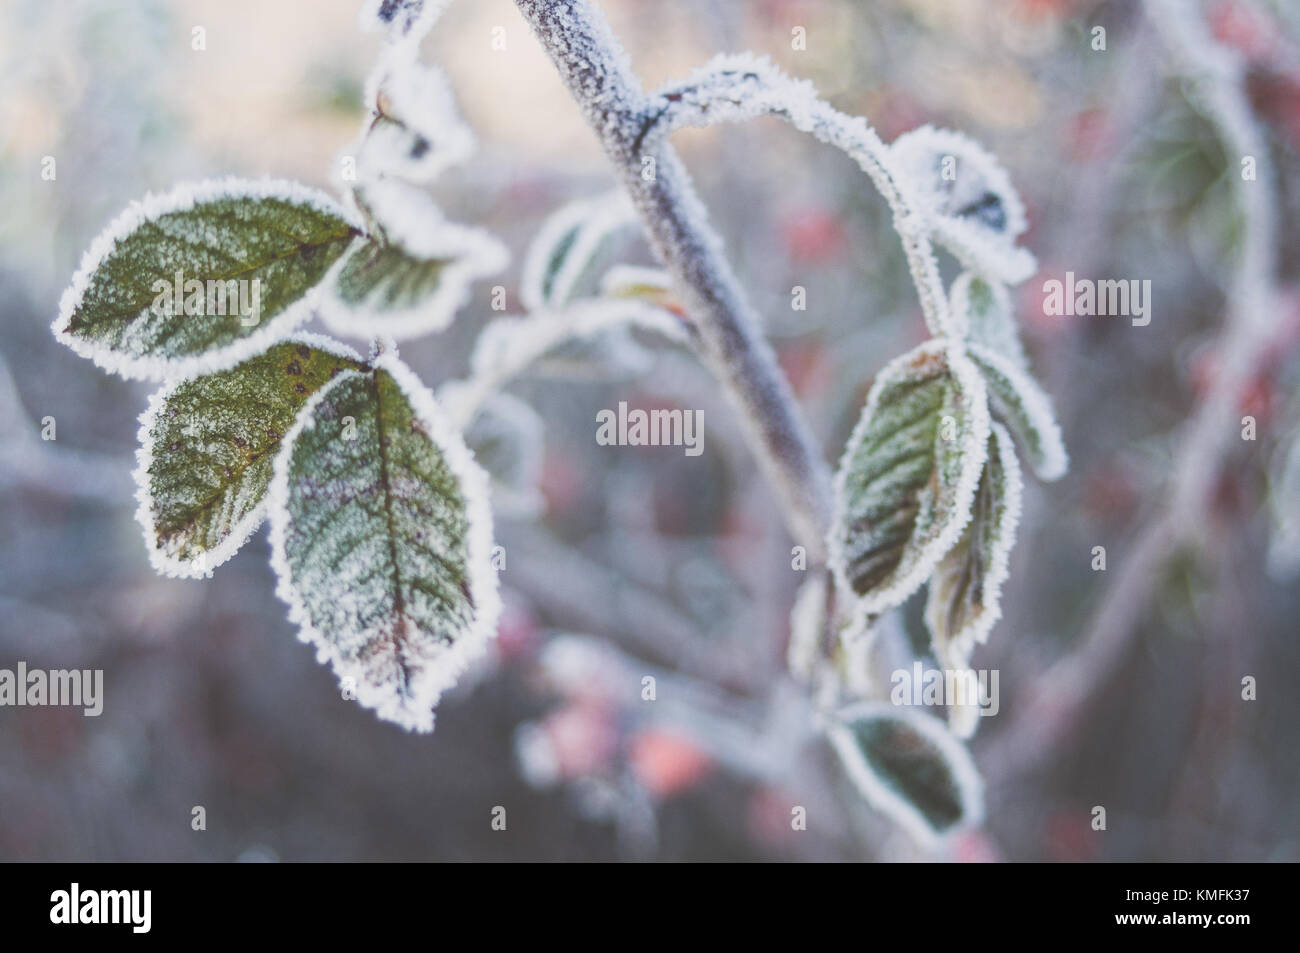 Hoarfrost crystals on sweetbrier leaves. - Stock Image